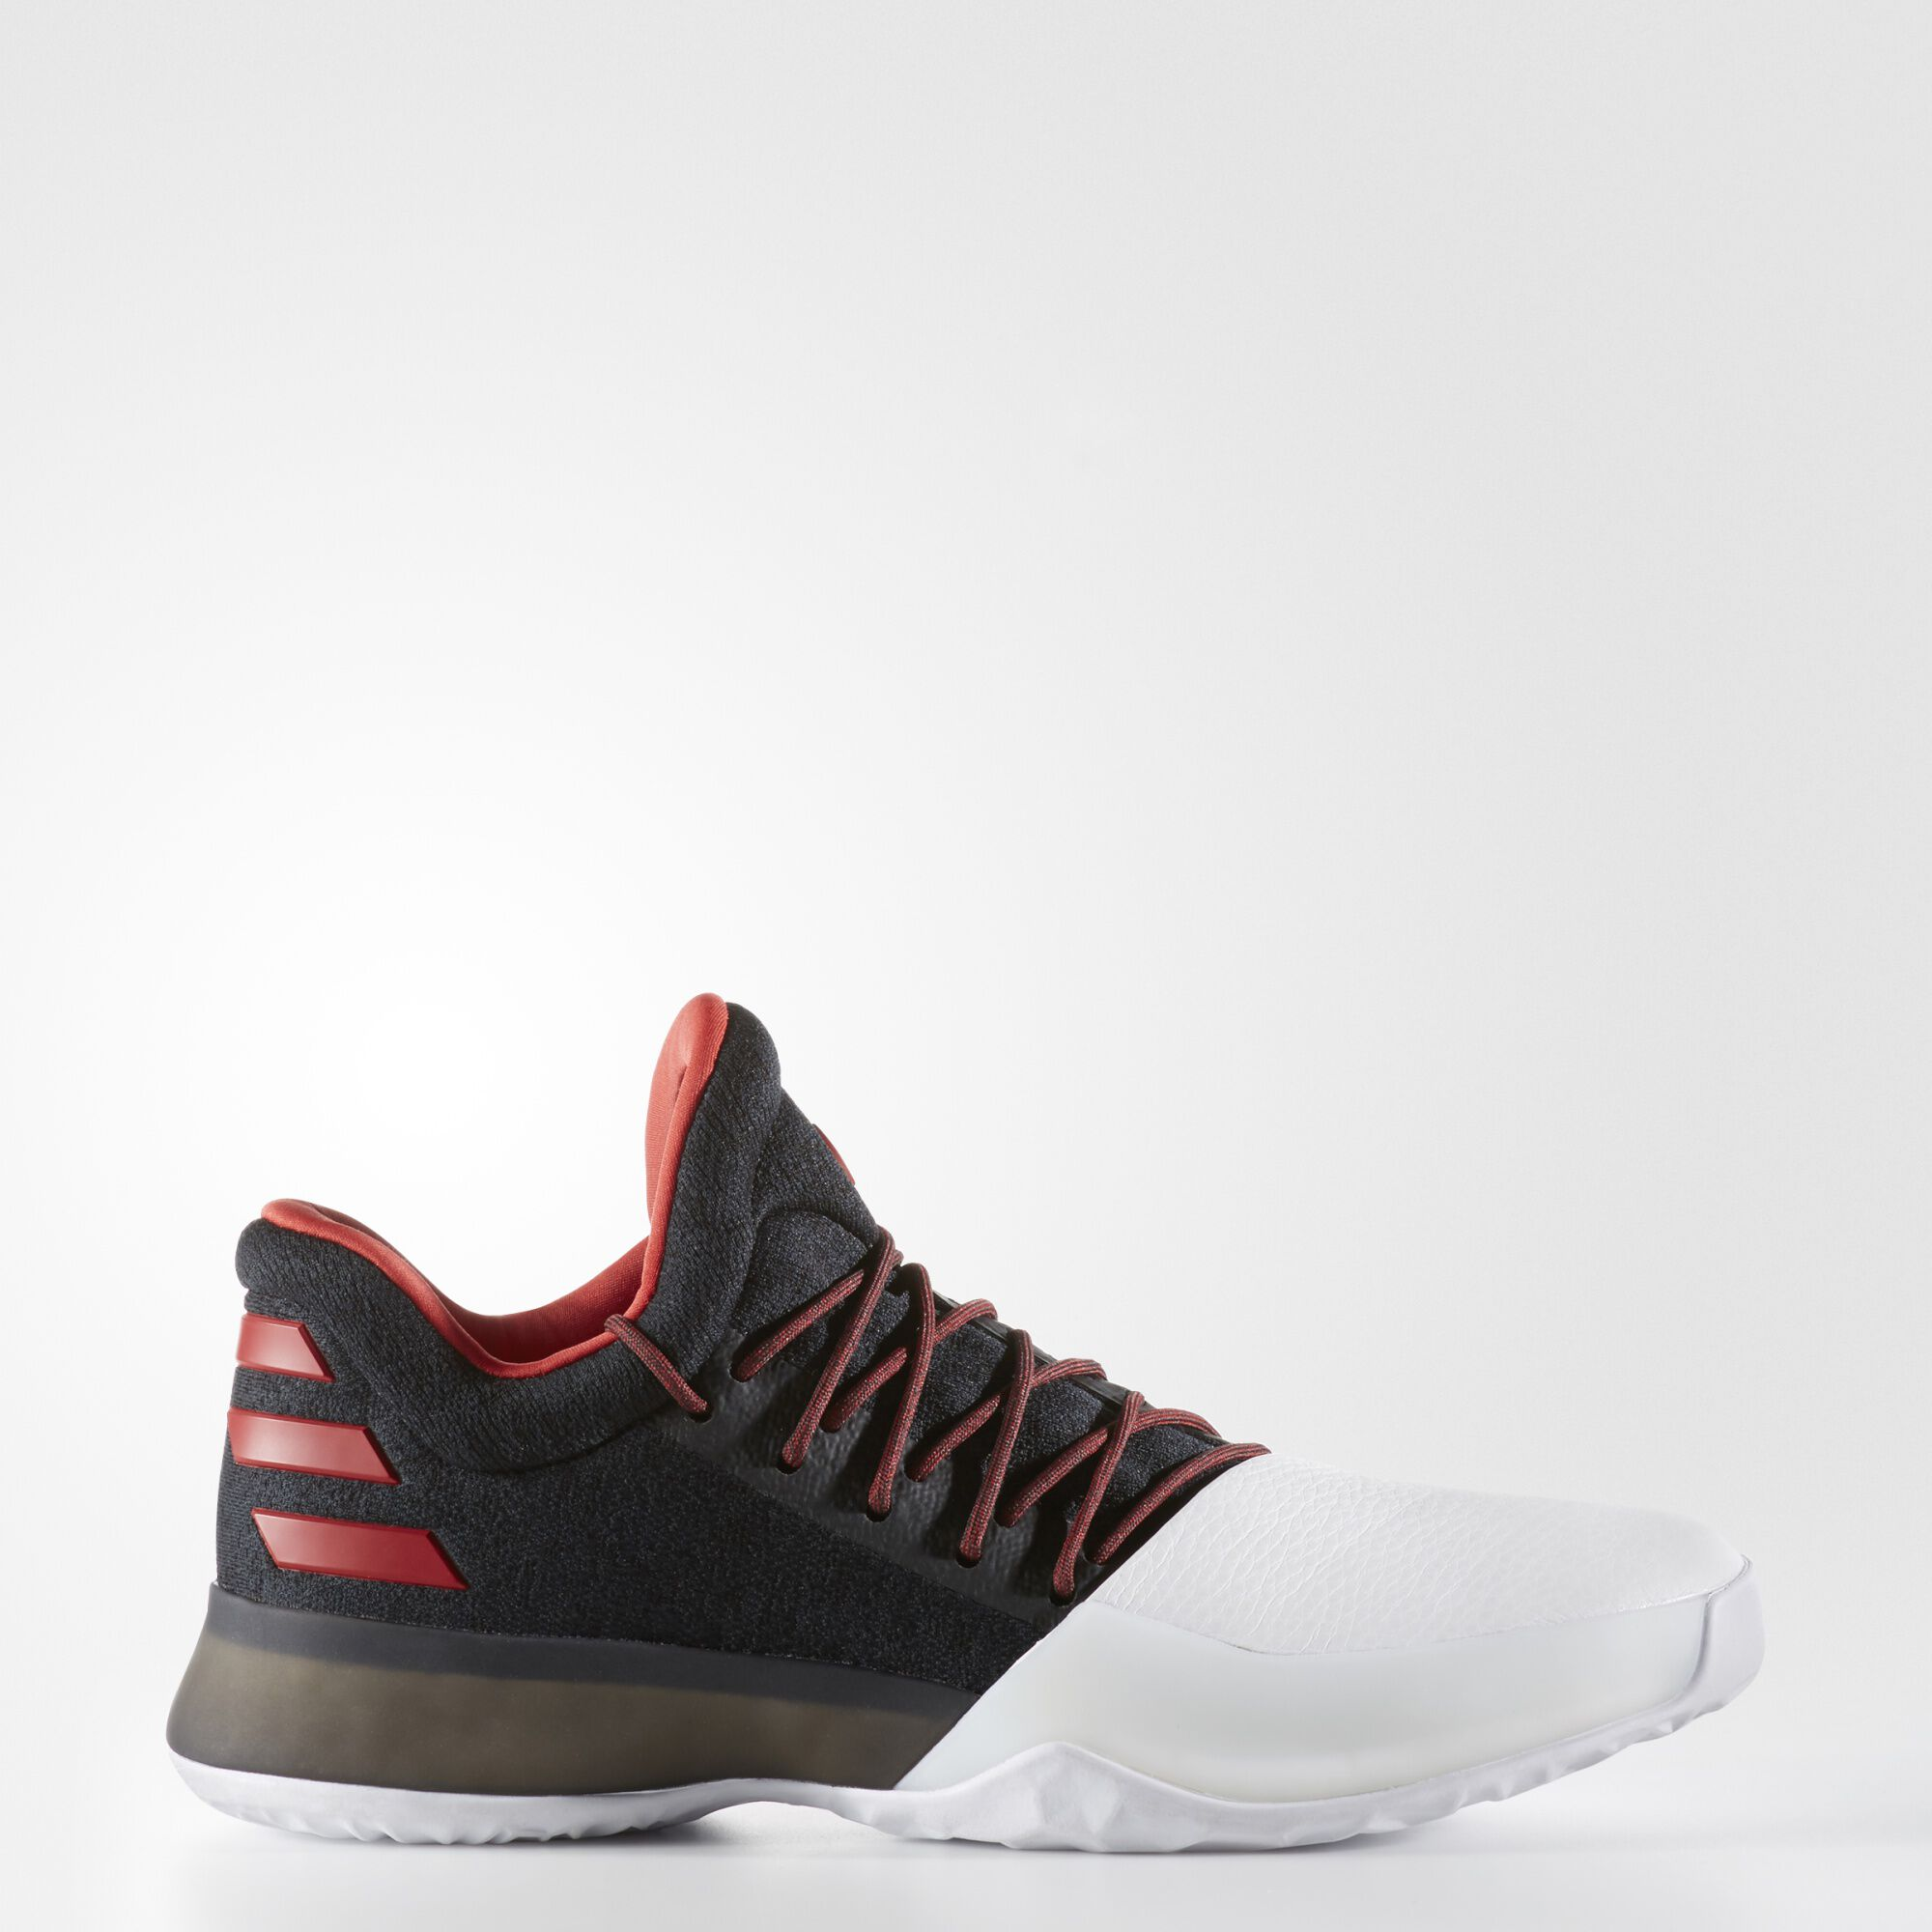 adidas james harden shoes for sale